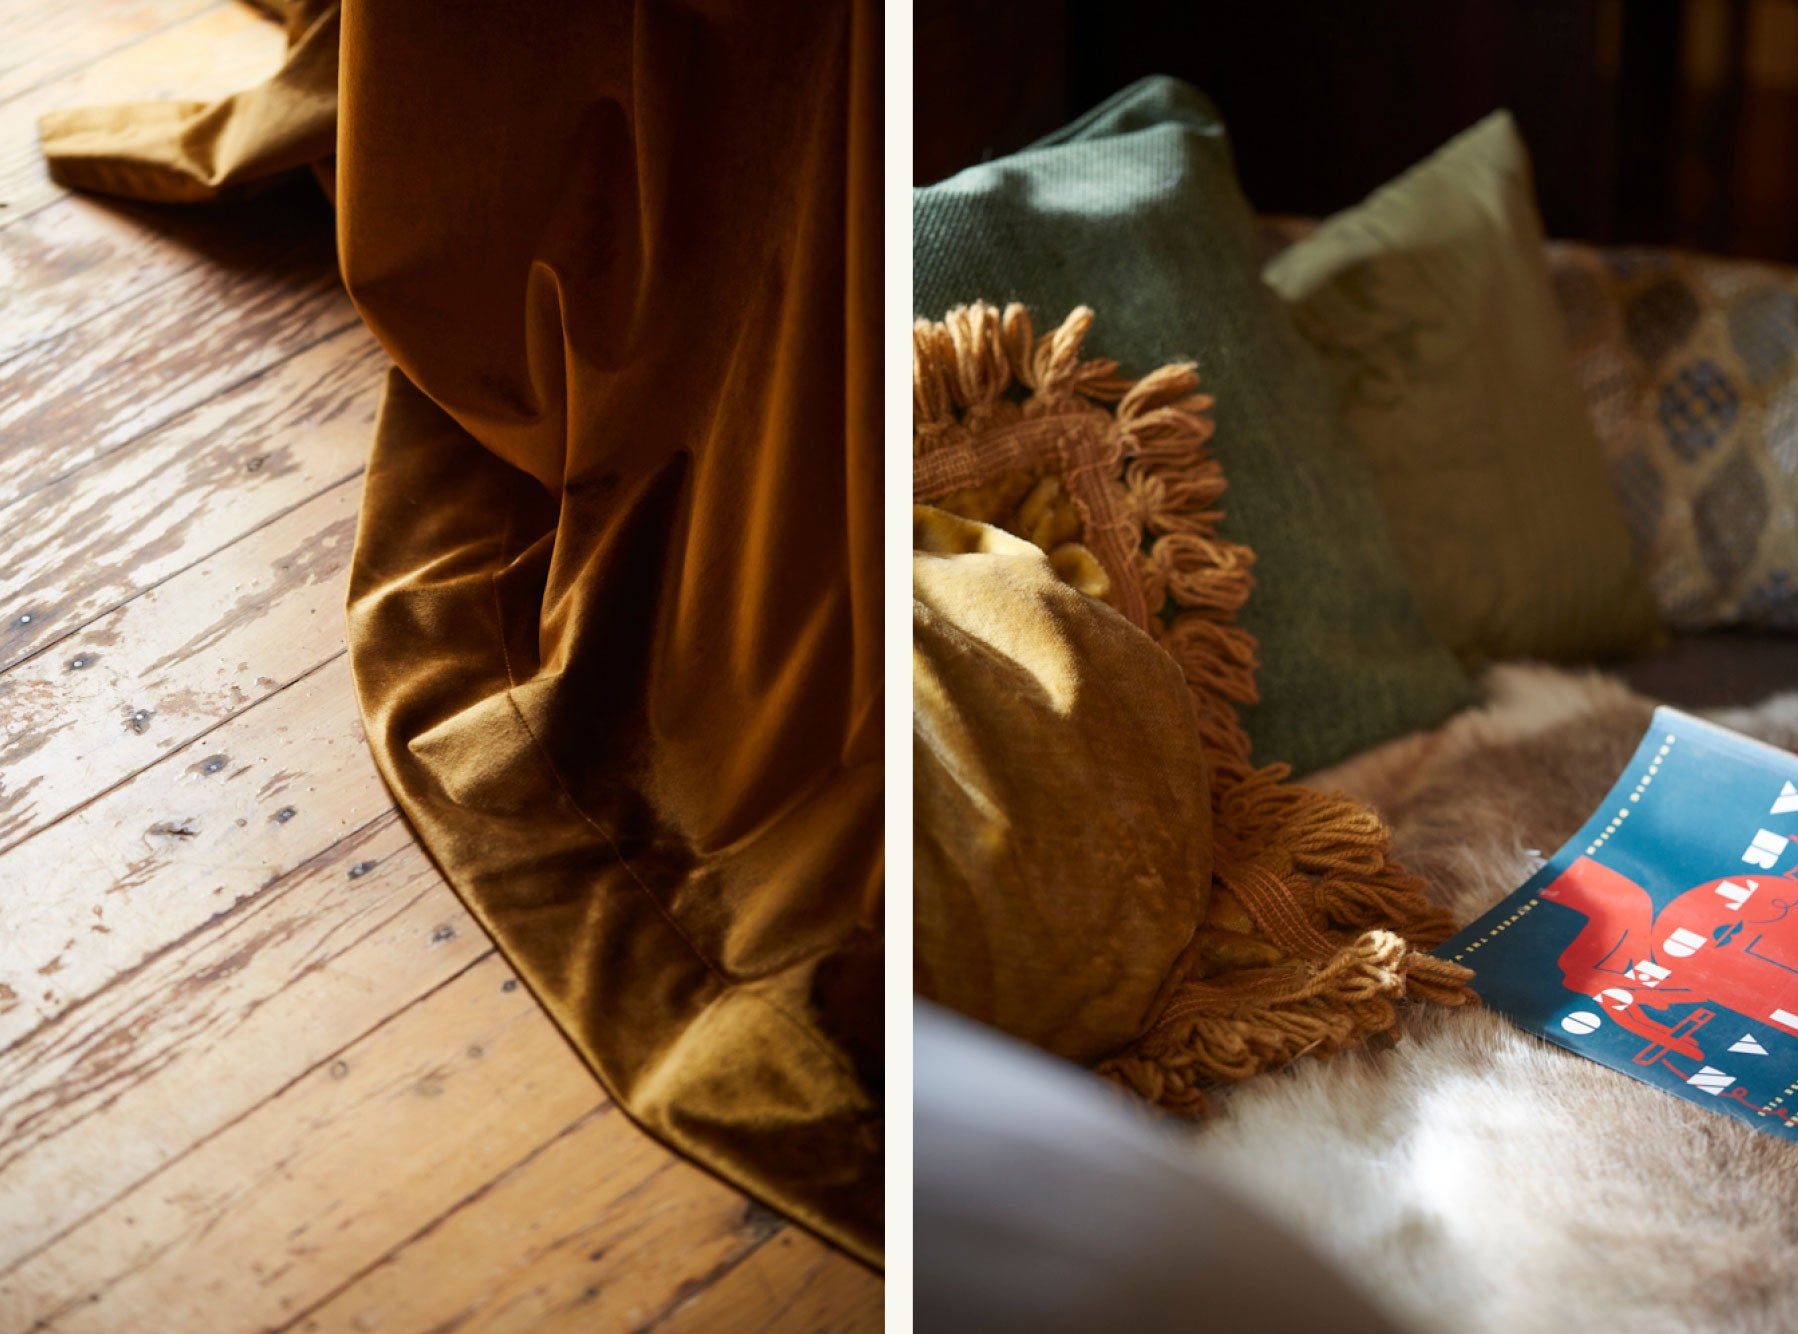 Details of velvet soft furnishings and books in a vintage interior